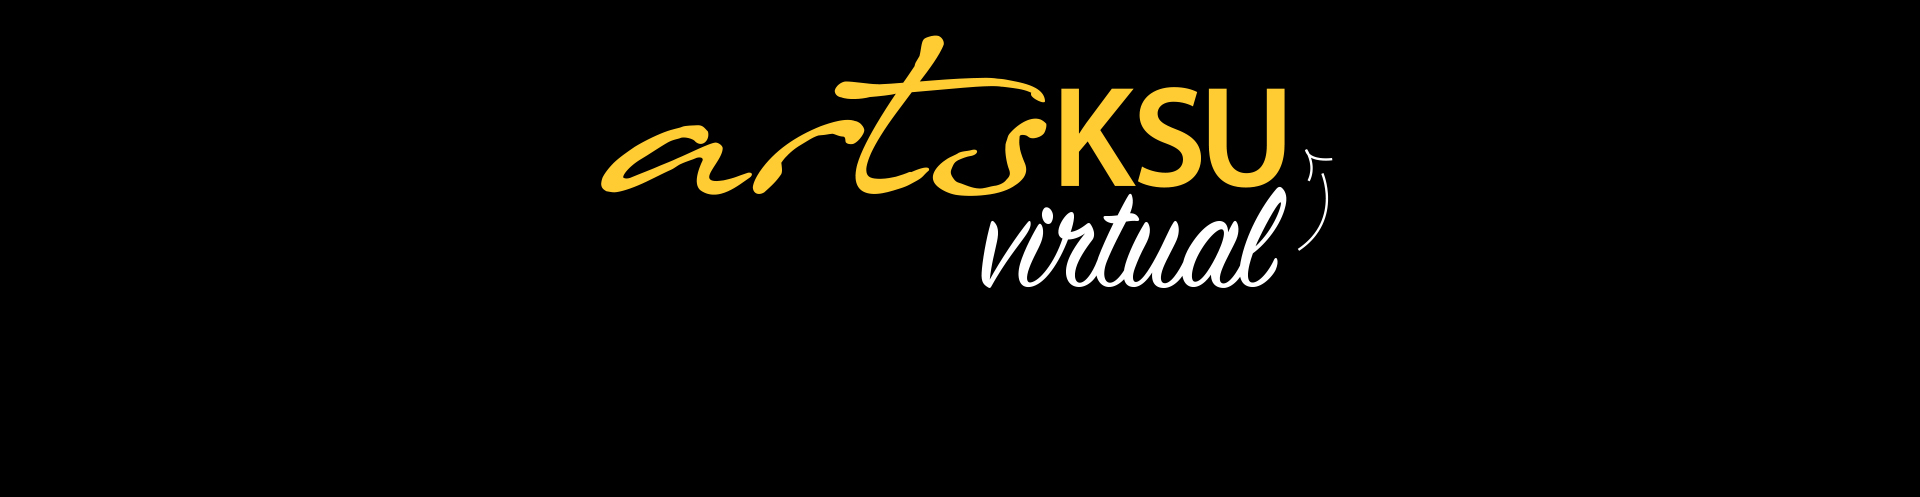 ArtsKSU Virtual in gold and white font over a black background.